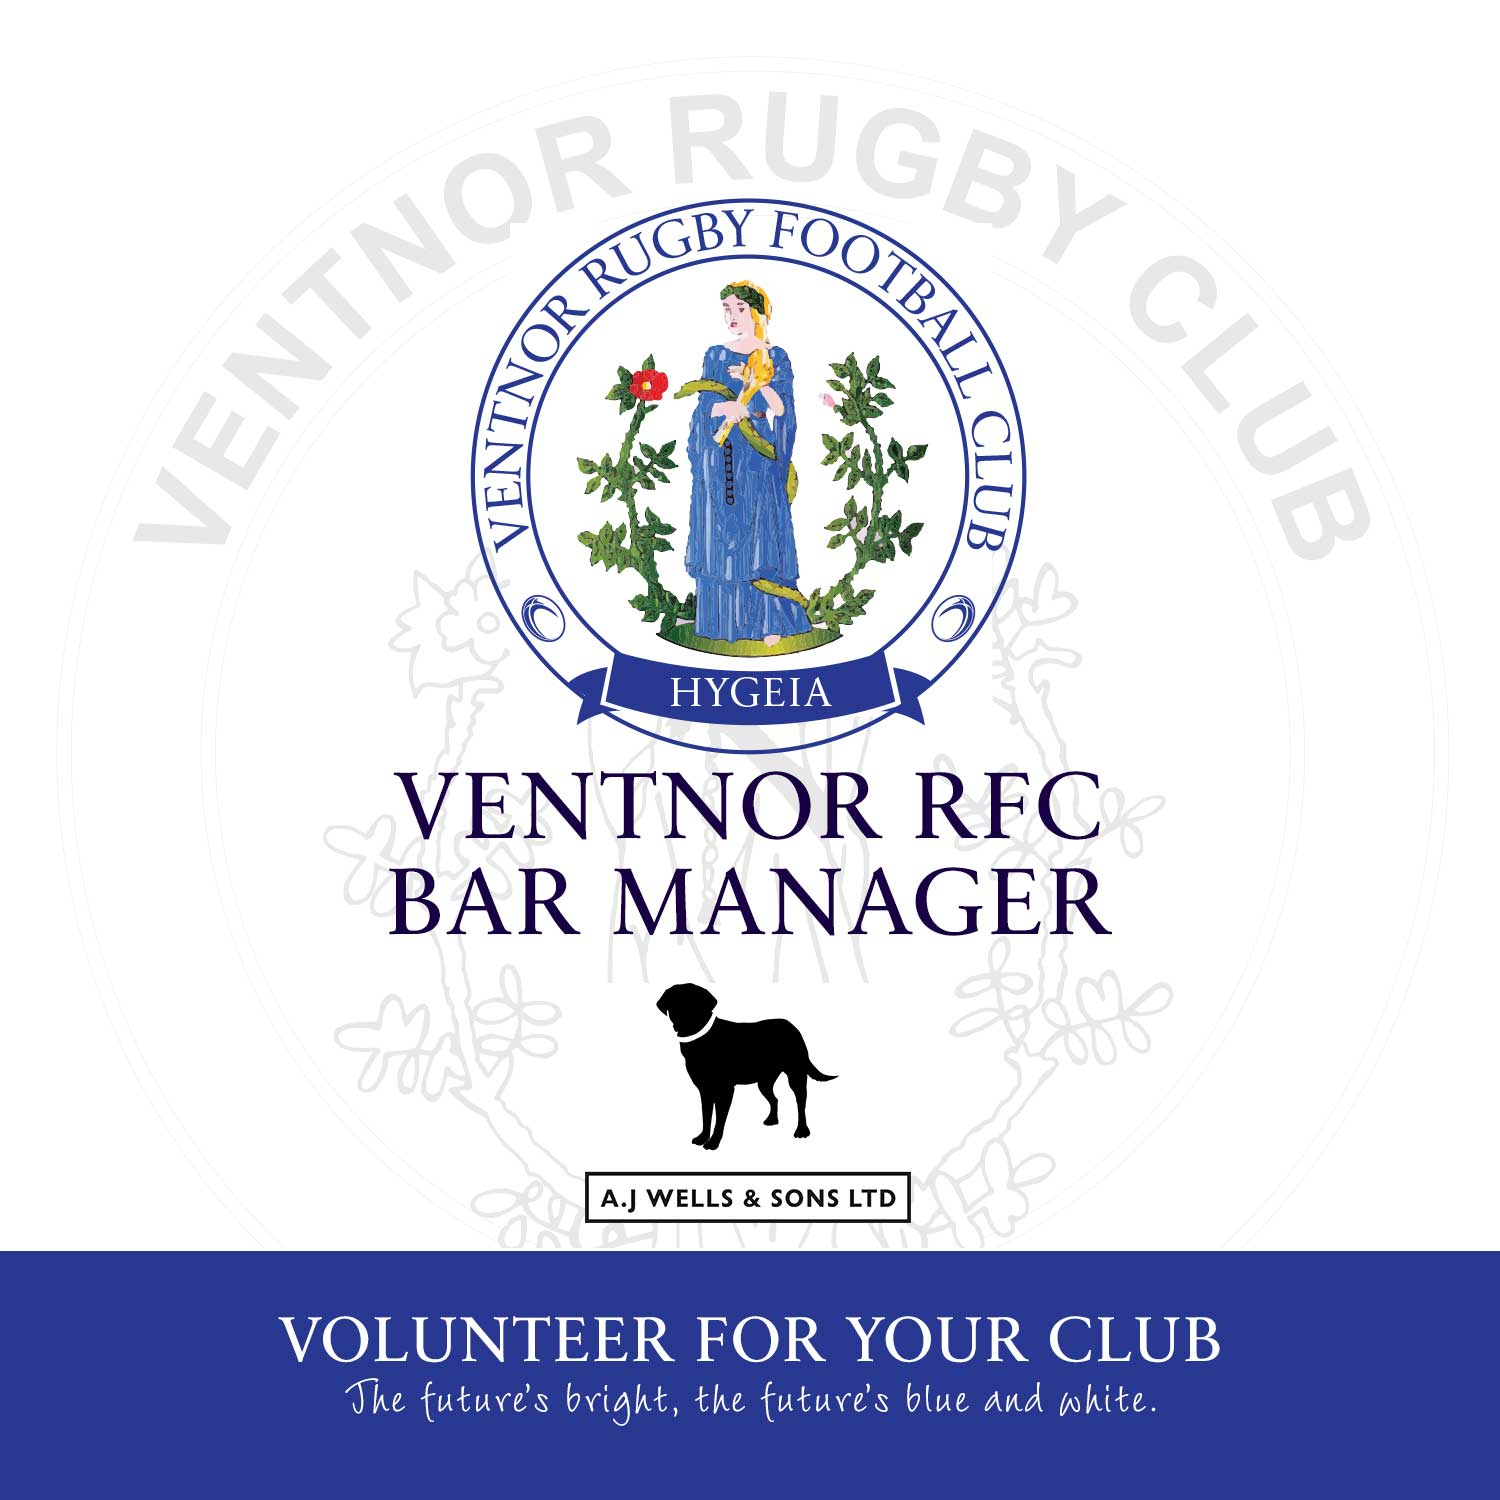 ventnor-rfc-committee-bar-manager-2018-19